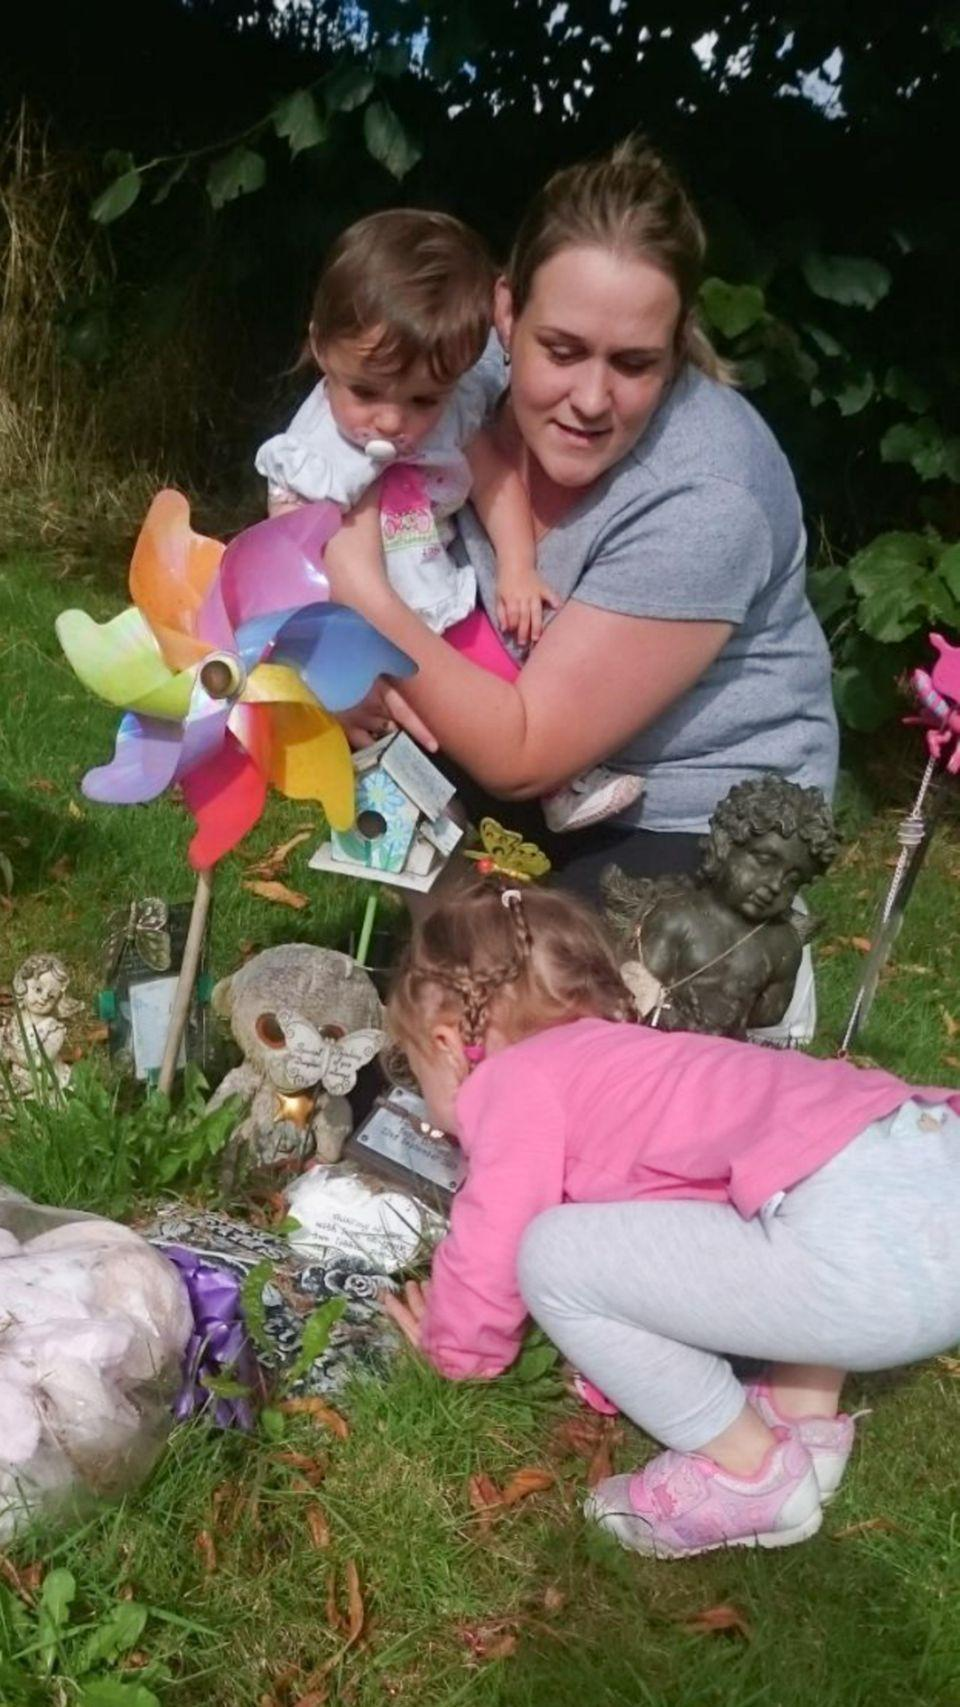 Mum Stacy has revealed her outrage at being ordered to remove her daughter's  memorial. Photo: Mercury Press